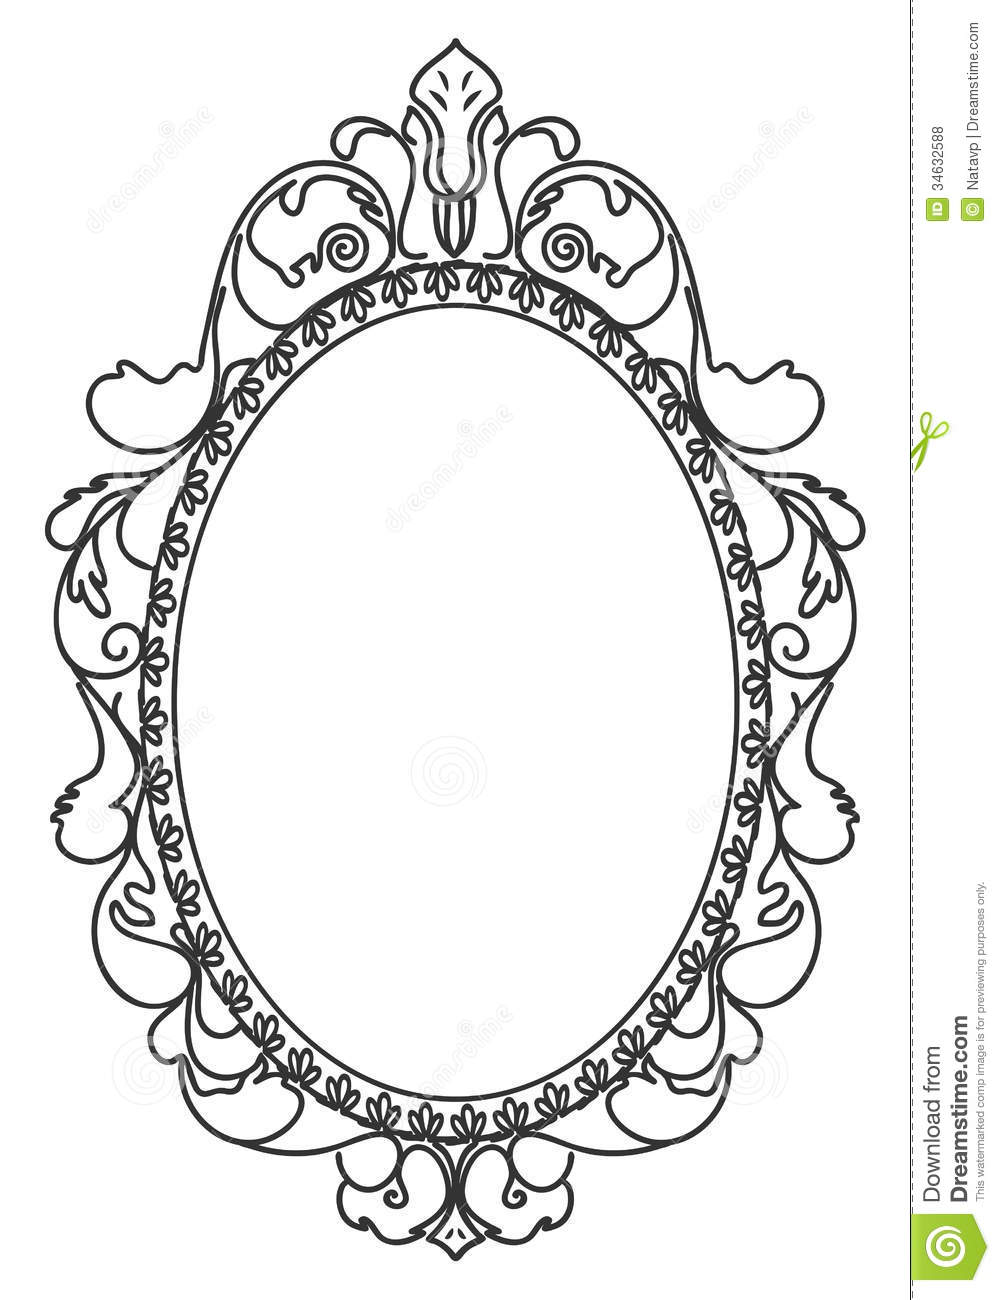 Frame Design Line Art : Antique frame drawing at getdrawings free for